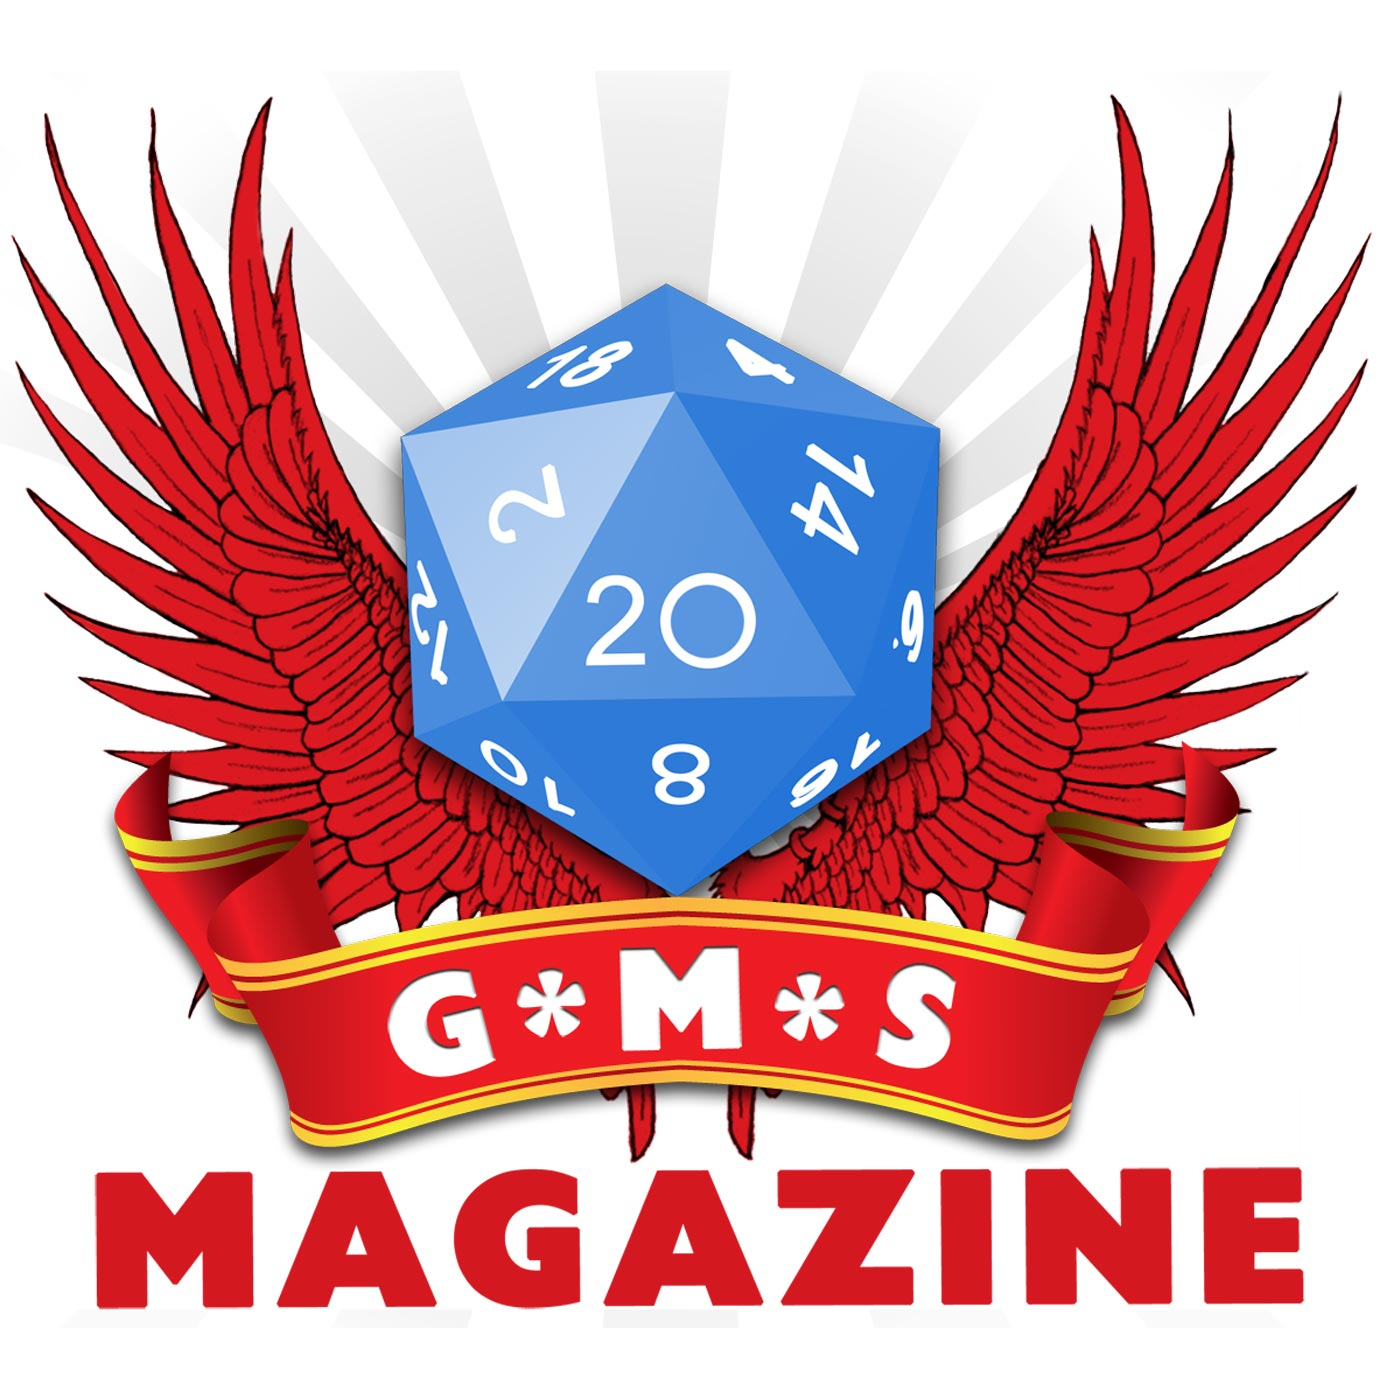 G*M*S Magazine Podcast  Channel logo